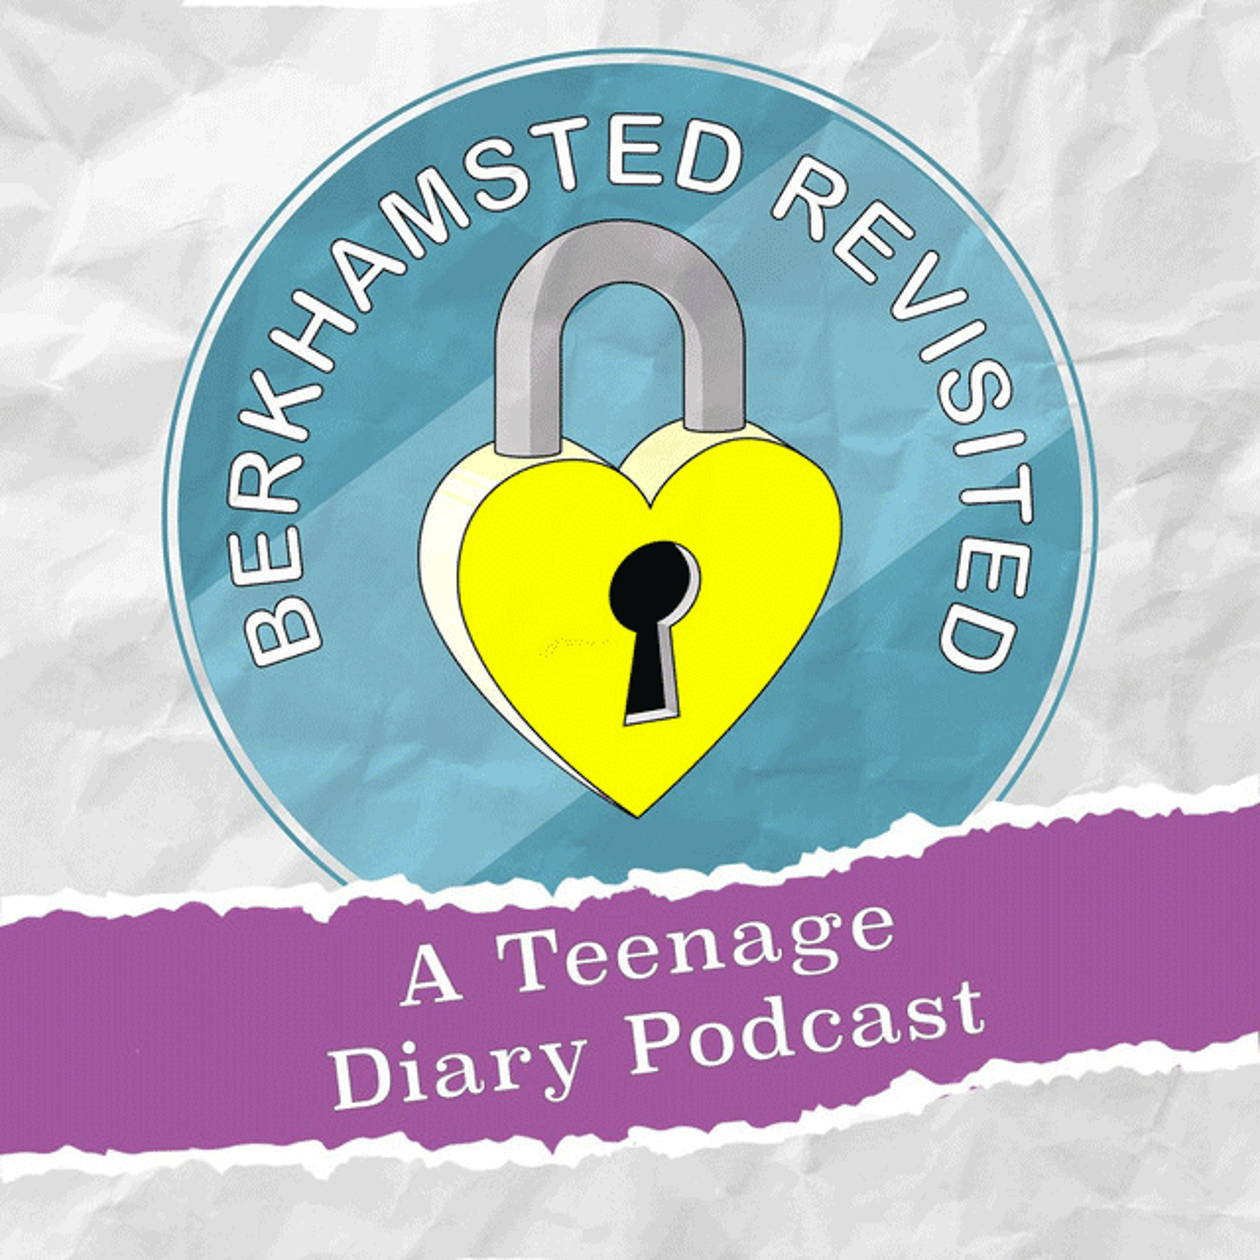 Artwork for the Berkhamsted Revisited: A Teenage Diary Podcast podcast.